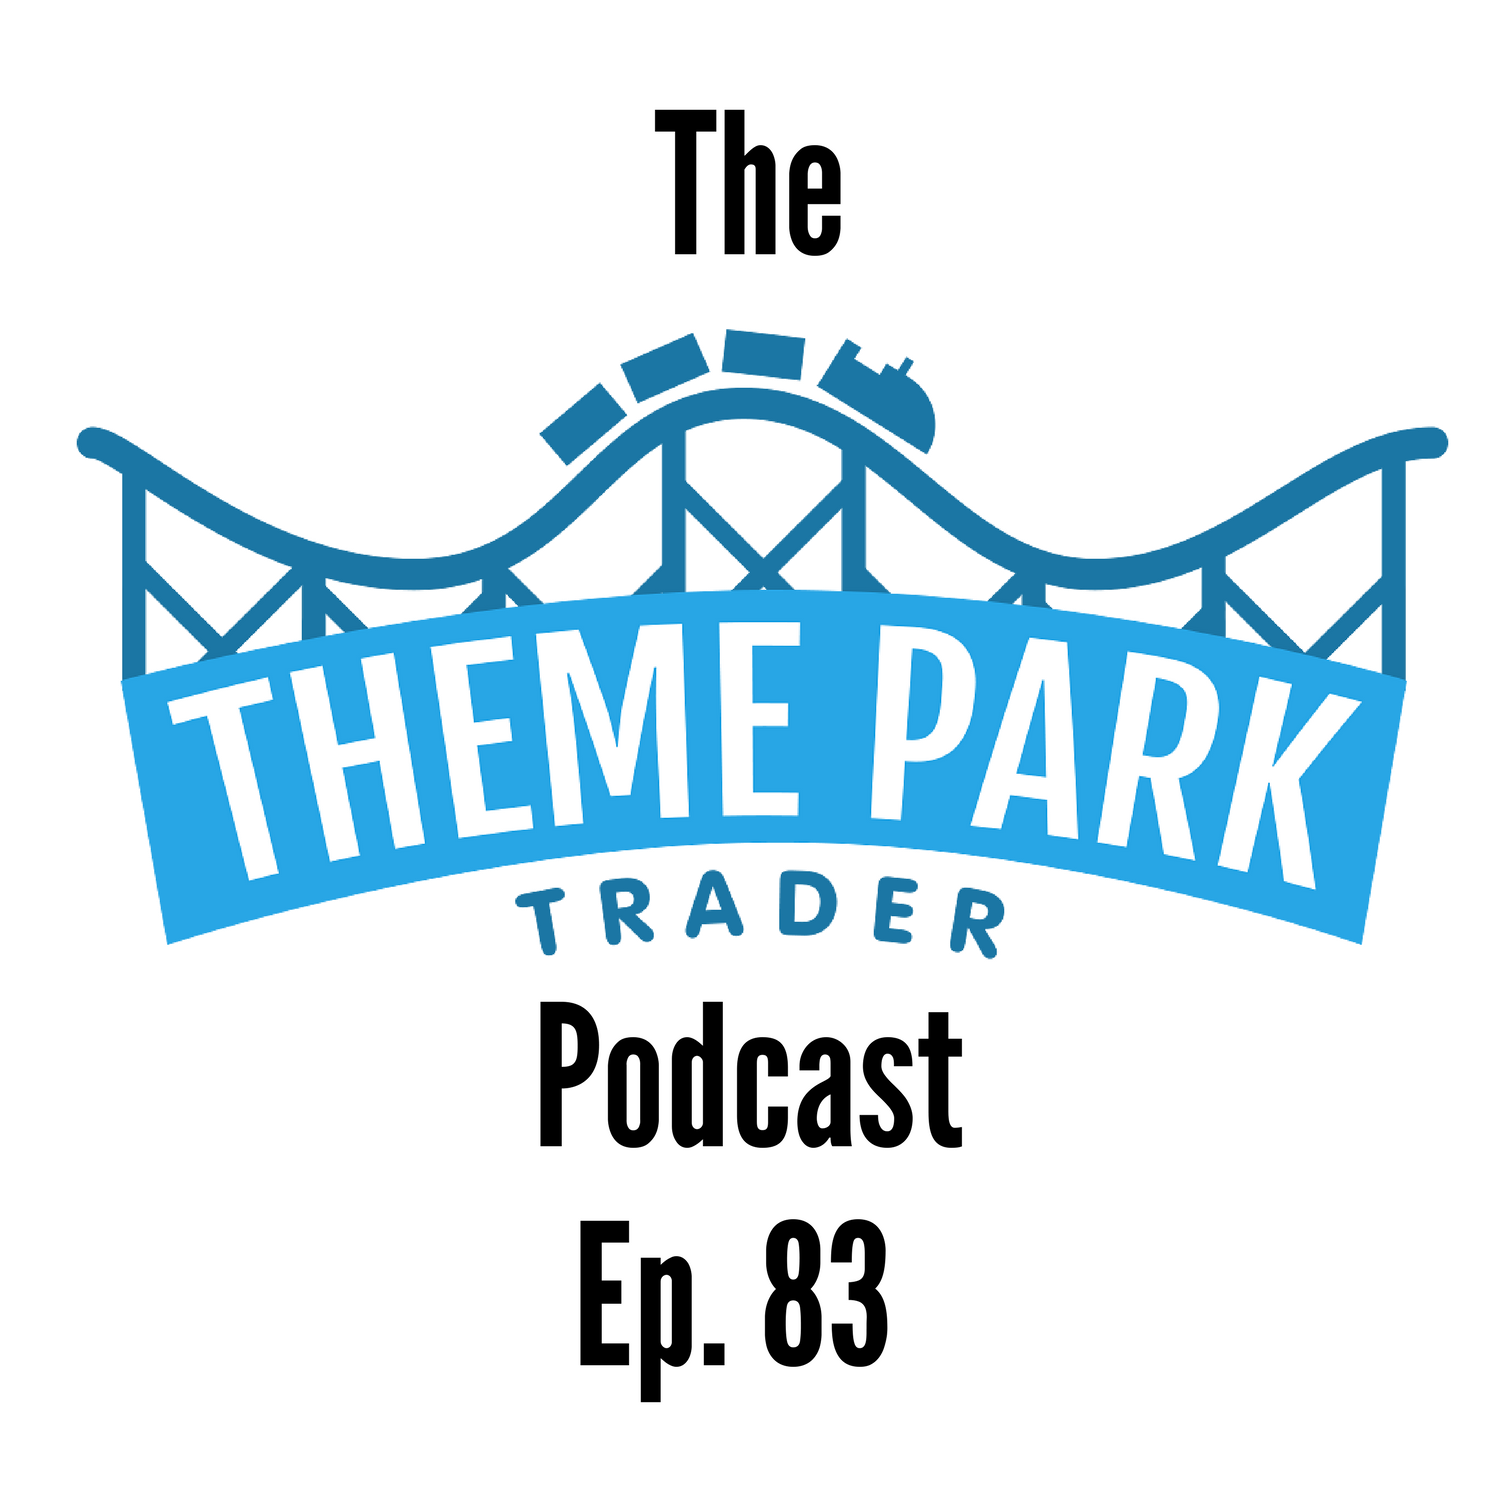 Episode 83 - Indy to Replace Dinosaur Rumours, Poor Reviews of Tower of Terror, MNSSHP Discussions + More!